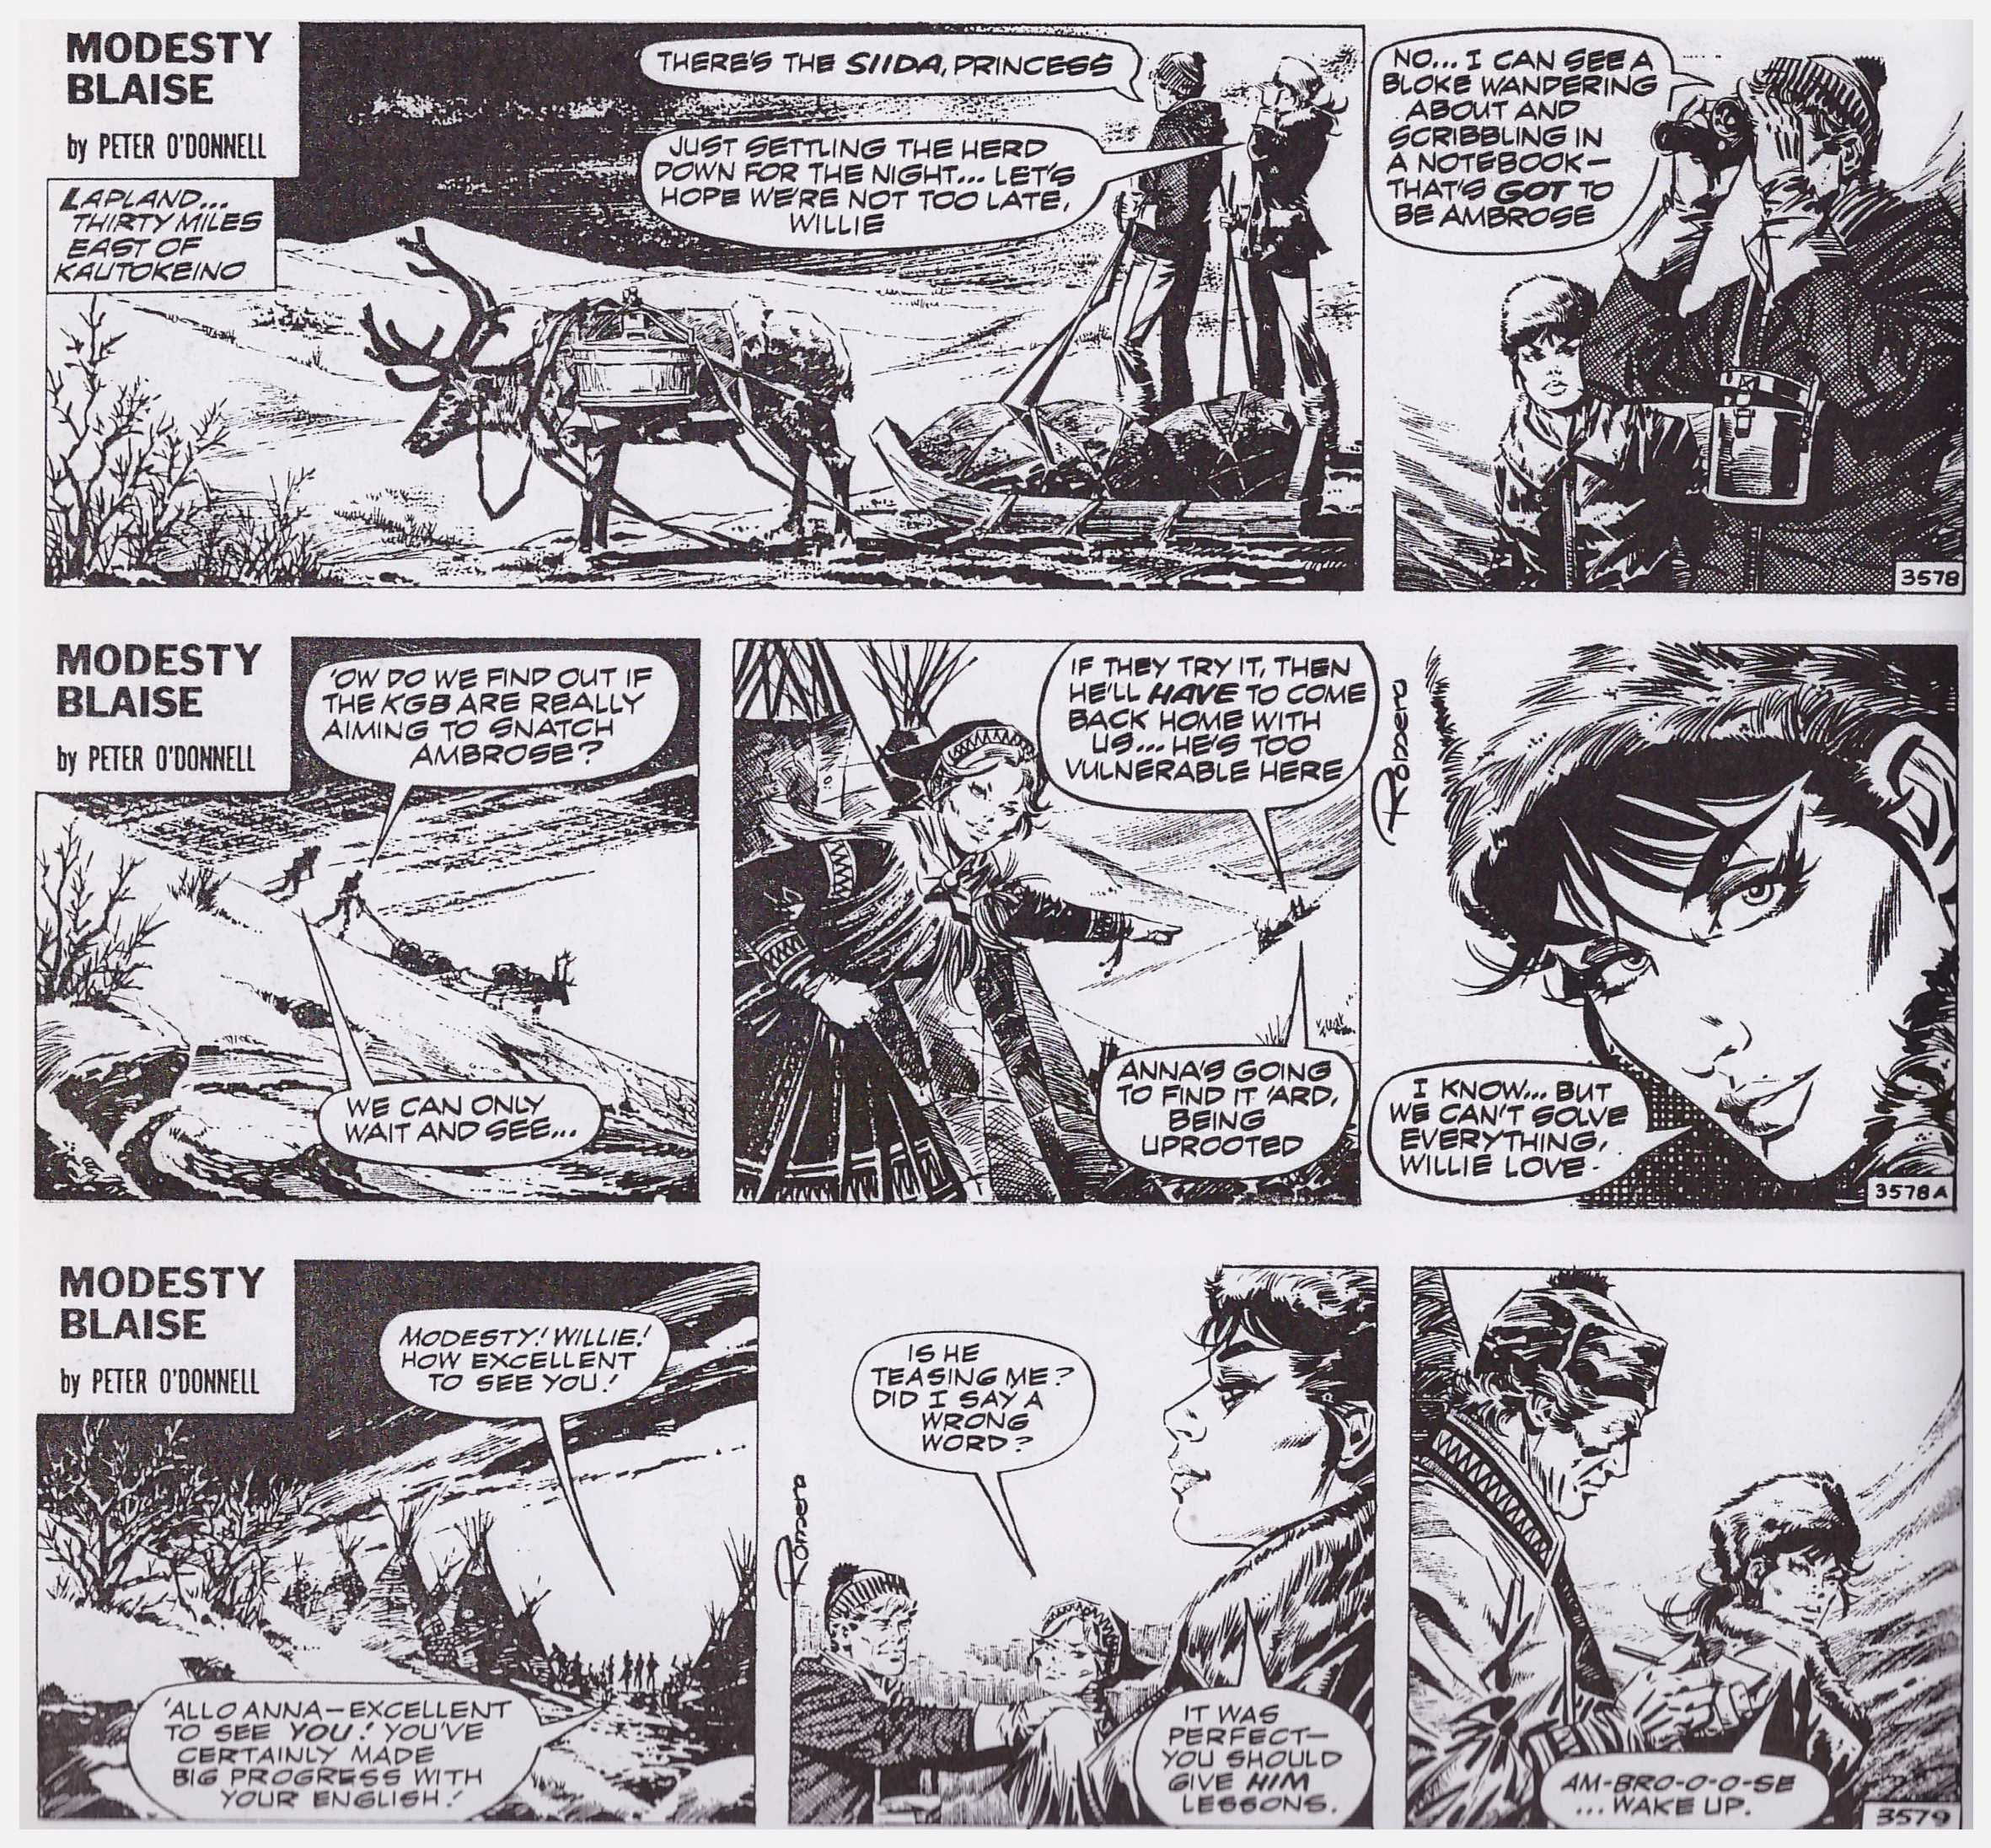 Modesty Blaise Cry Wolf review